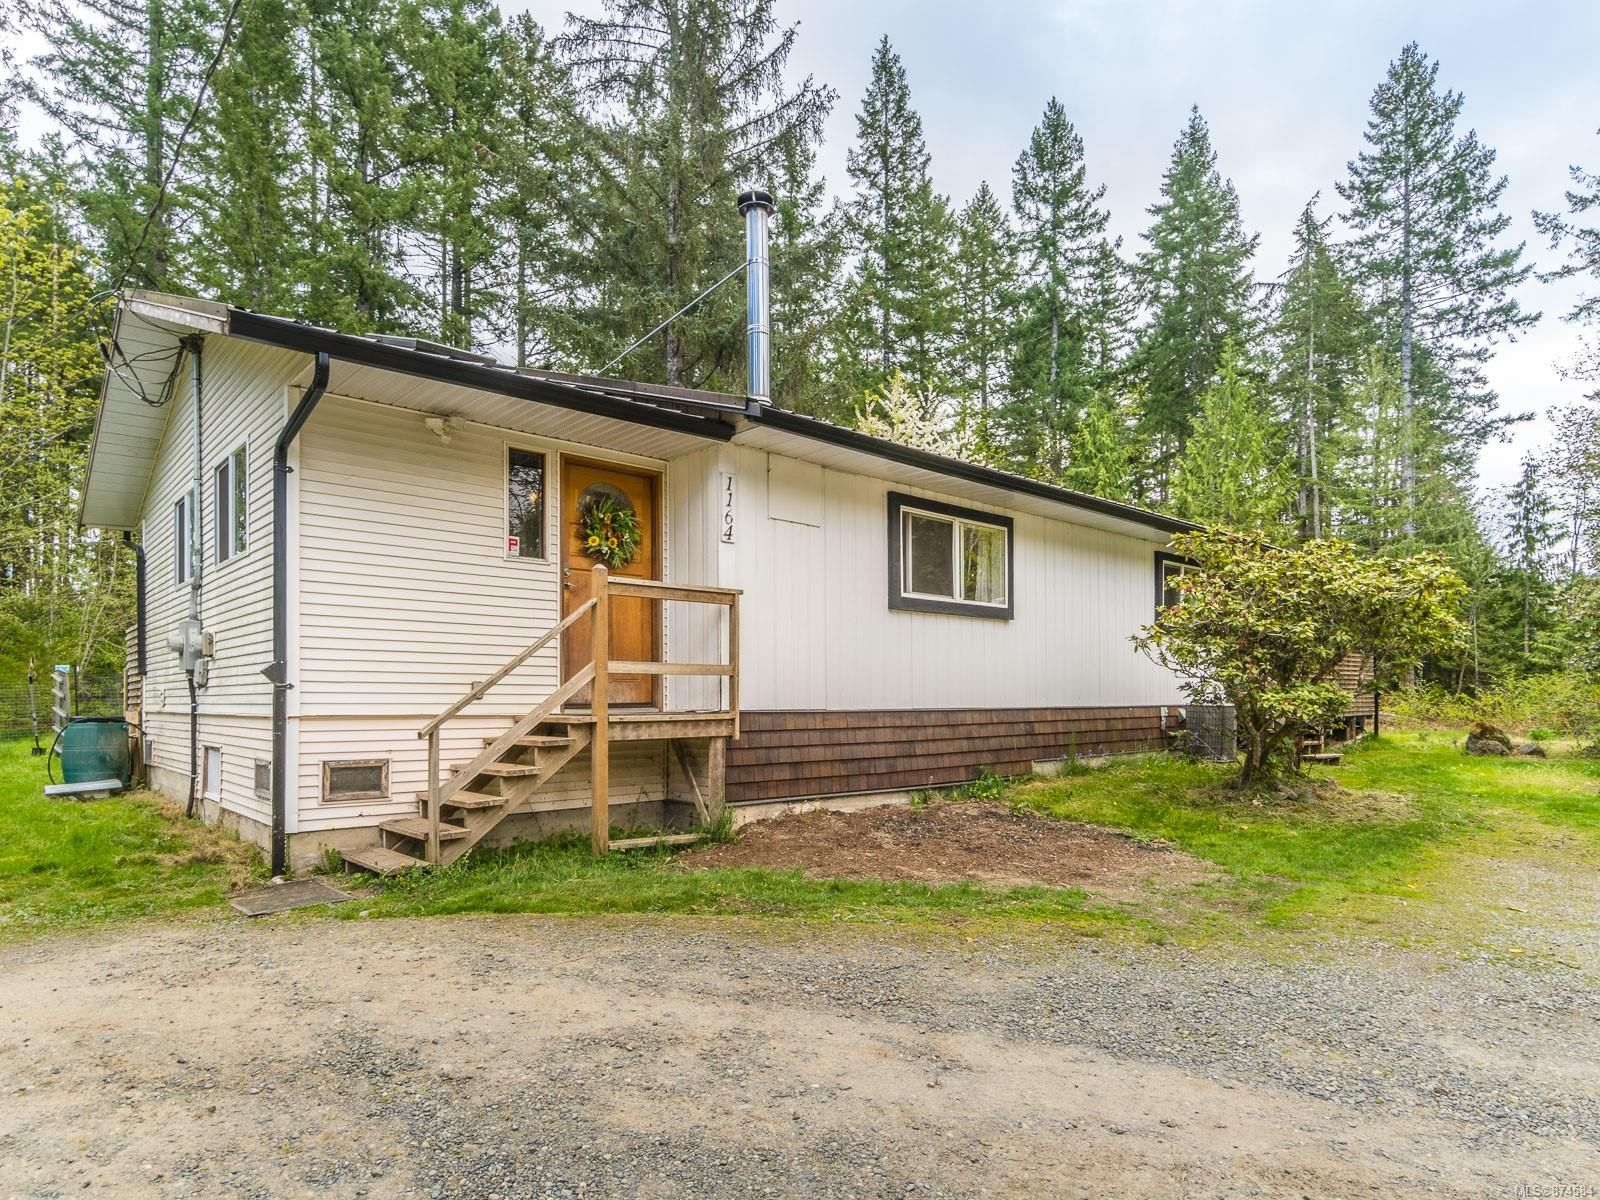 Main Photo: 1164 Pratt Rd in Coombs: PQ Errington/Coombs/Hilliers House for sale (Parksville/Qualicum)  : MLS®# 874584